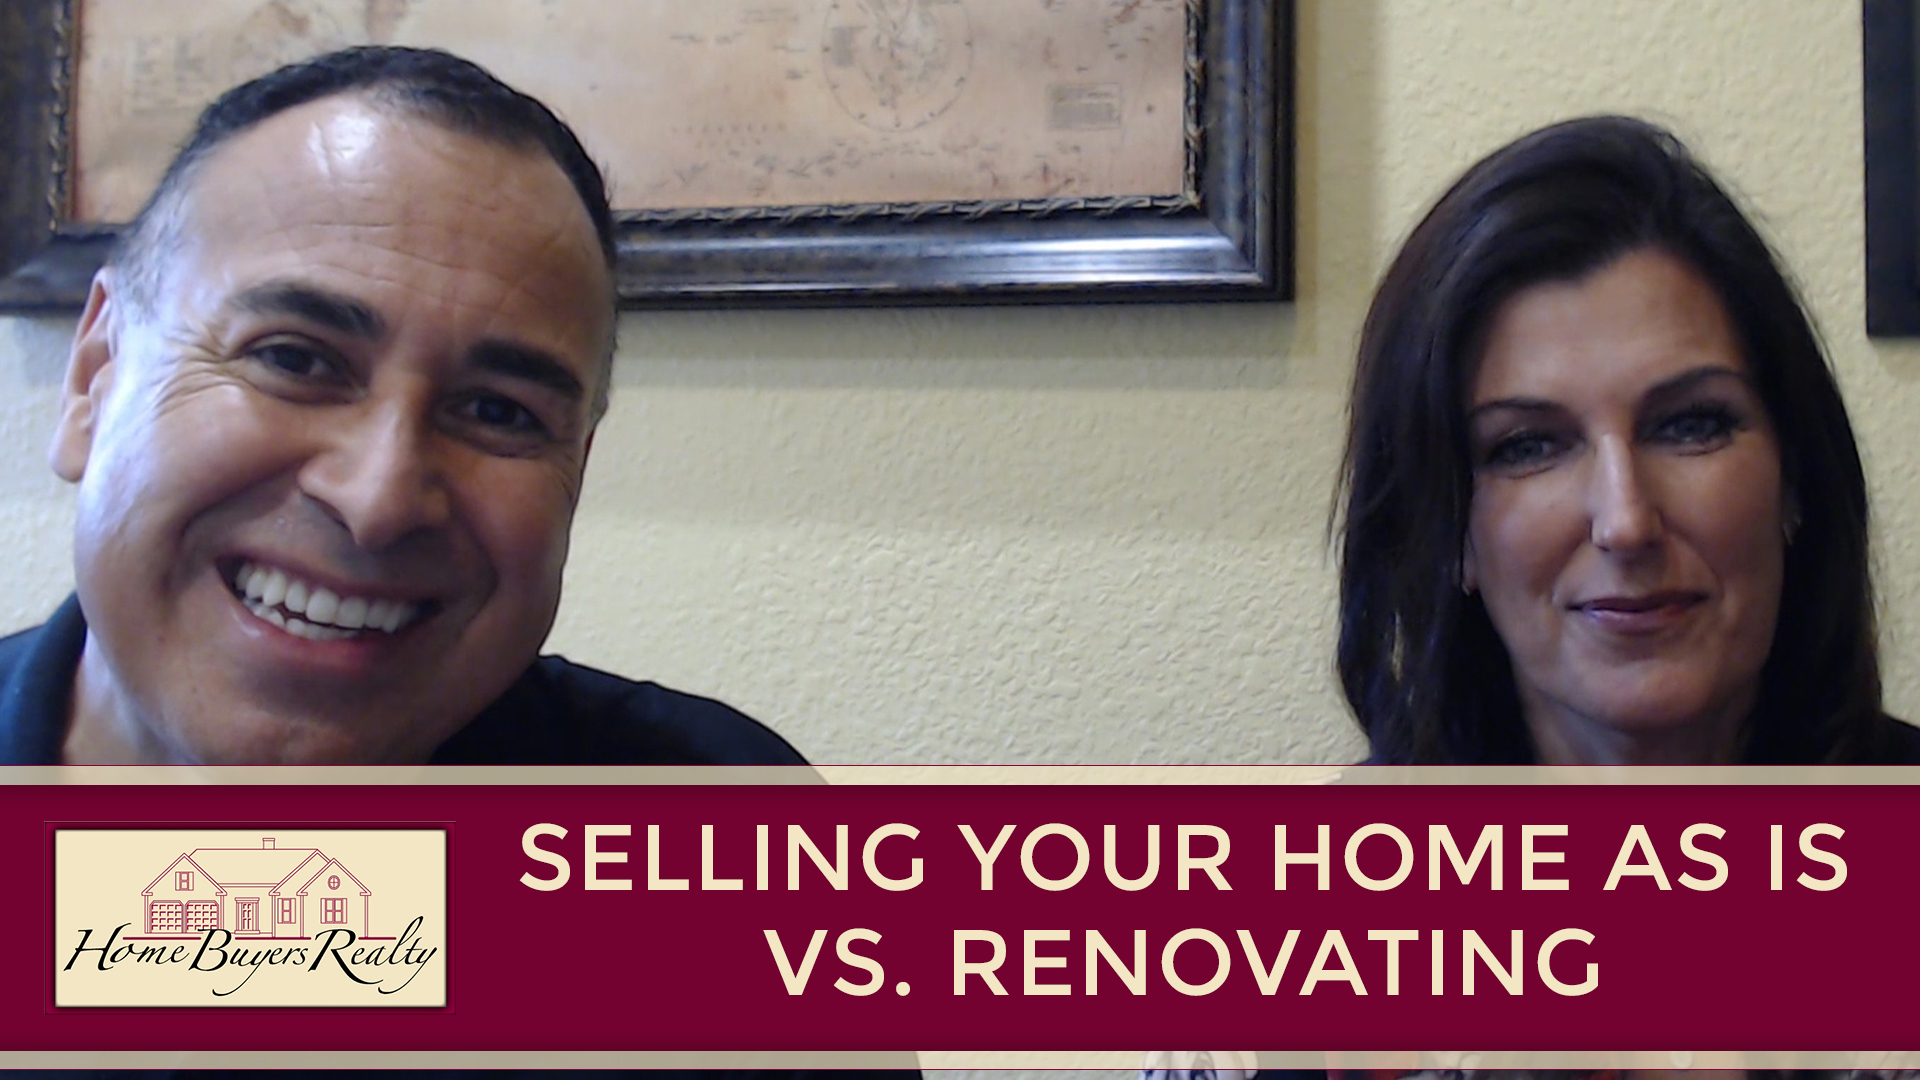 When Does It Make Sense to Sell Your Home As Is?